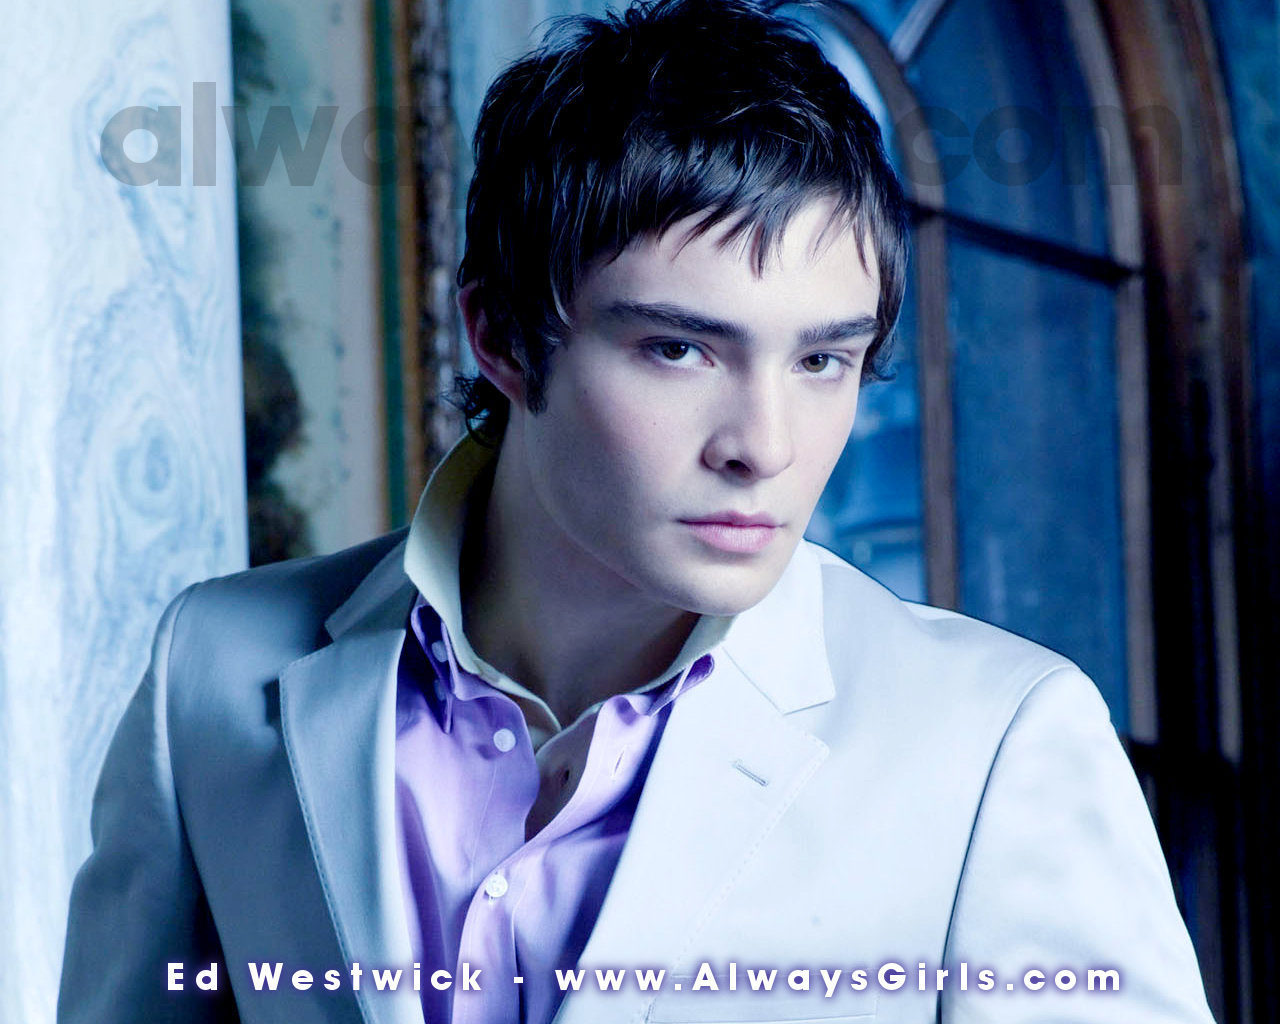 Ed Westwick images Ed Westwick HD wallpaper and background photos ... Ed Westwick